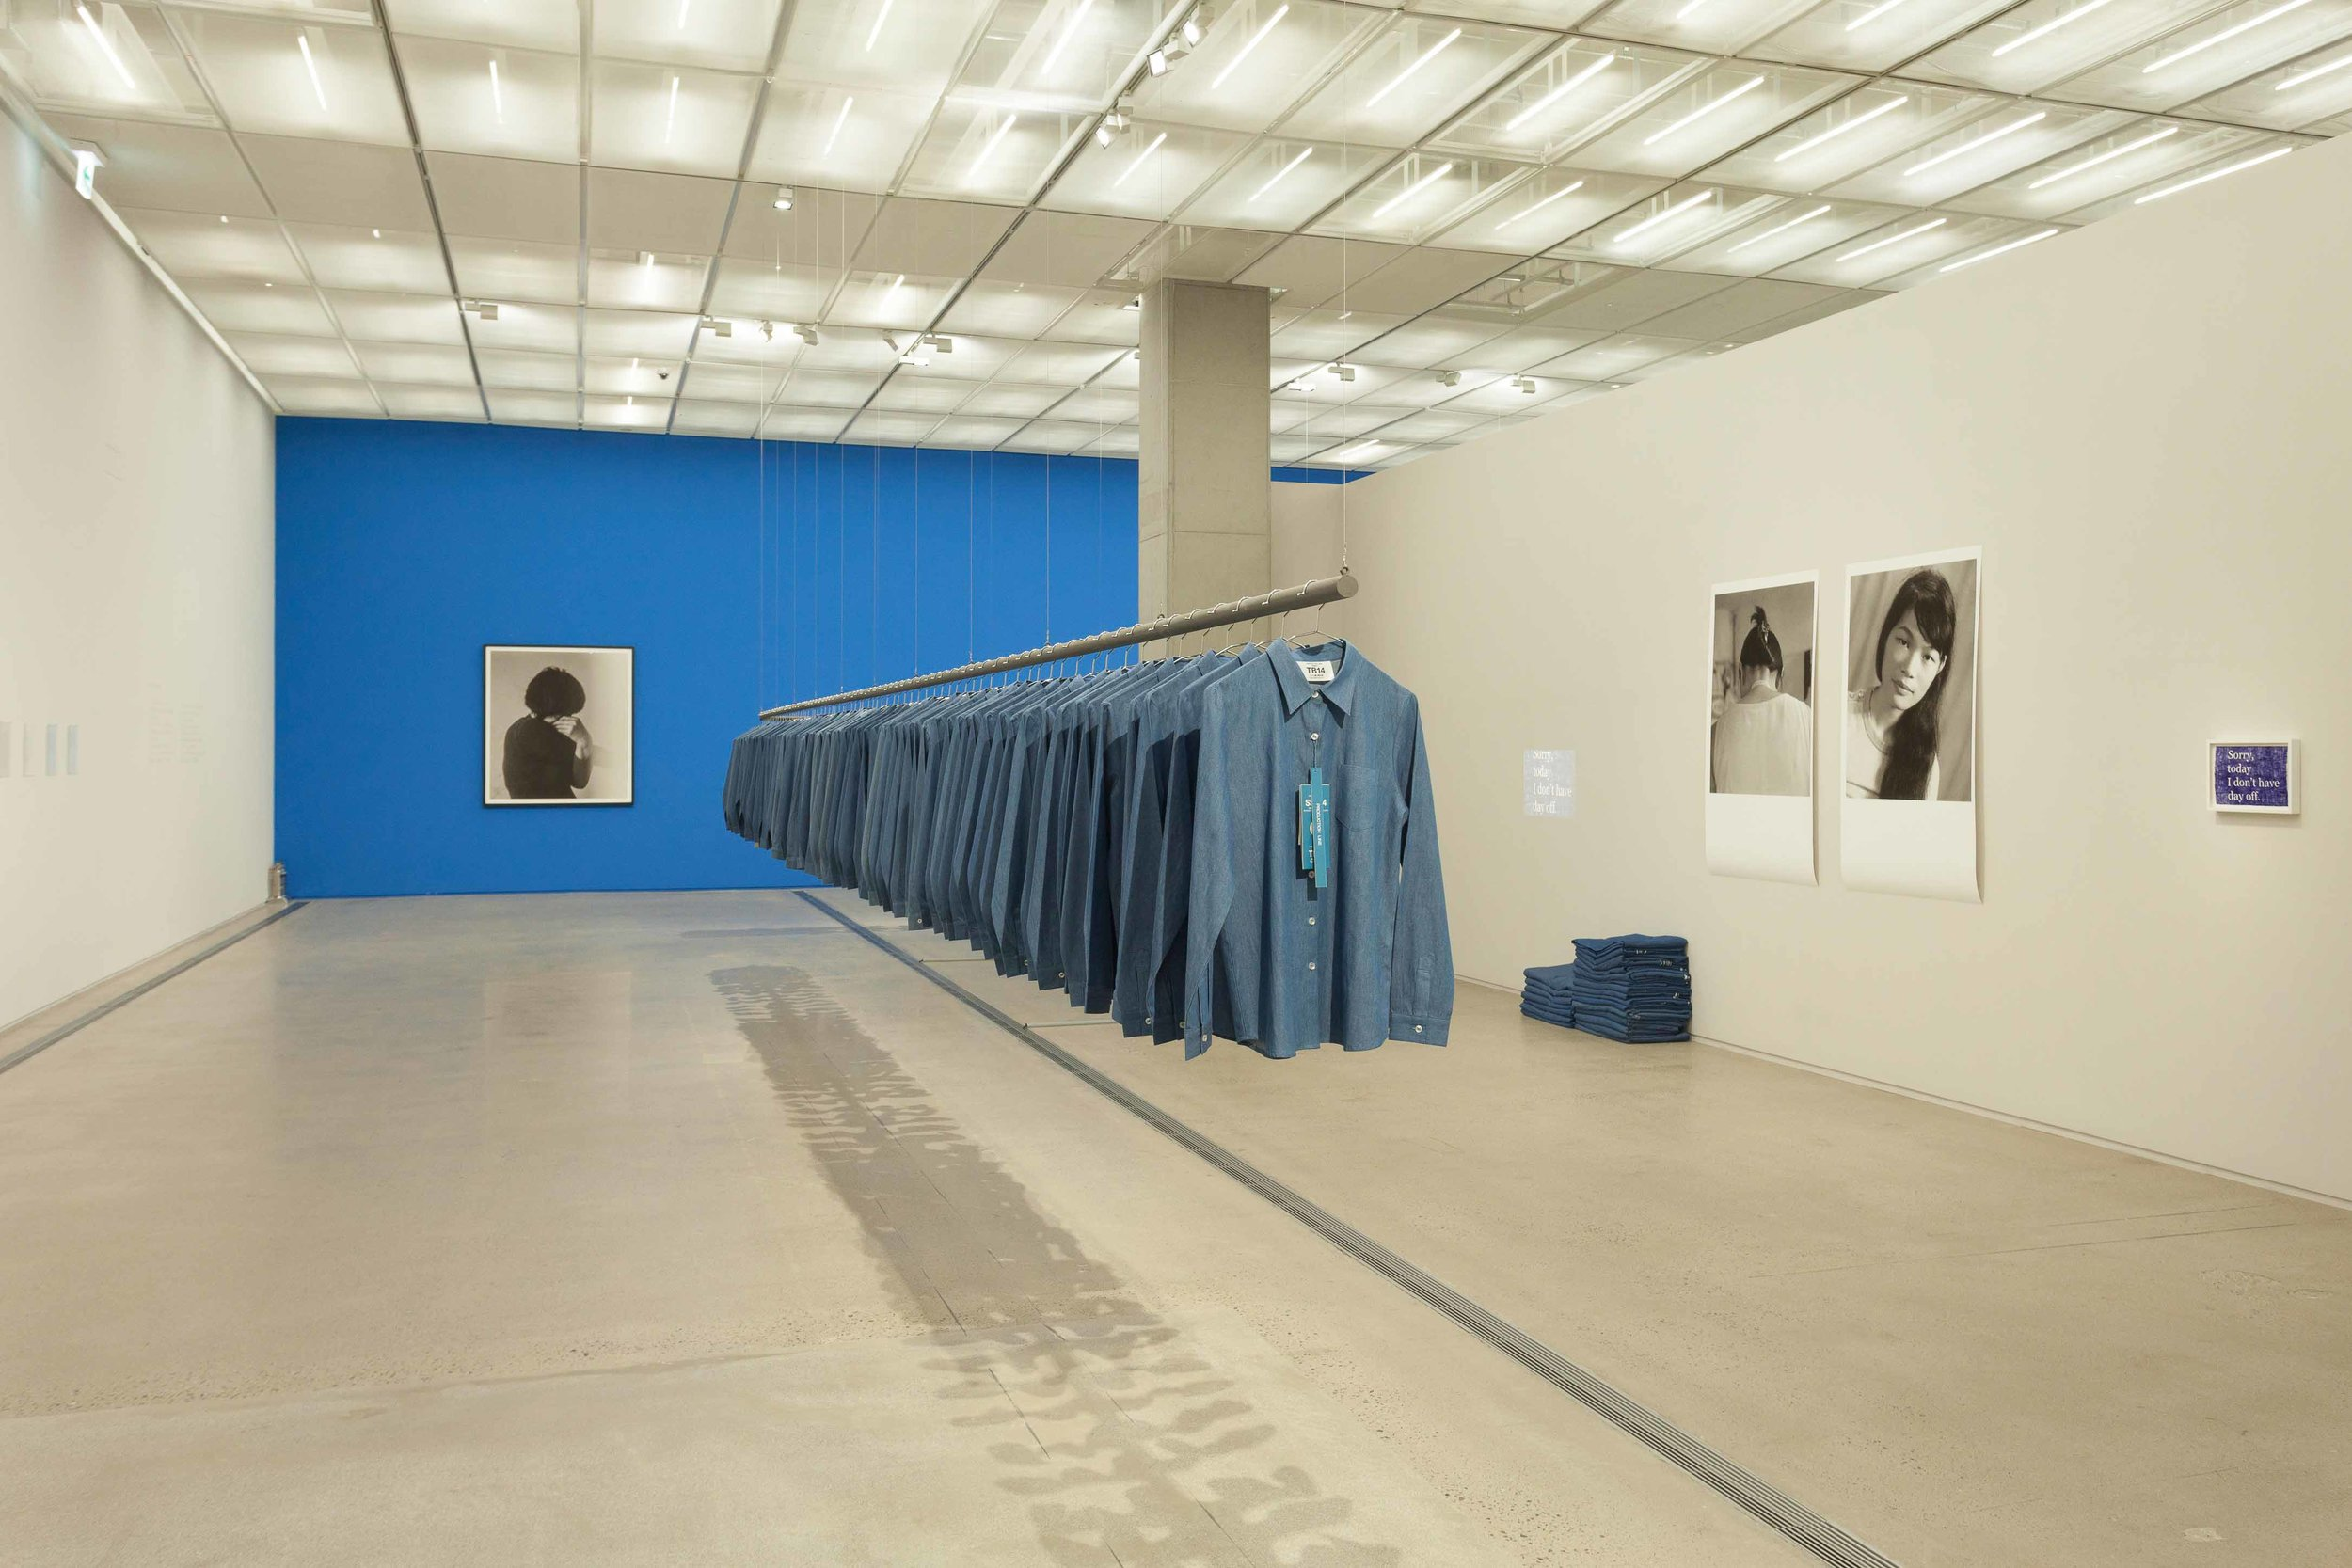 Huang Po-Chih, 'Production Line', 2014-2018, installation view. Image courtesy of National Museum of Modern and Contemporary Art, Korea.